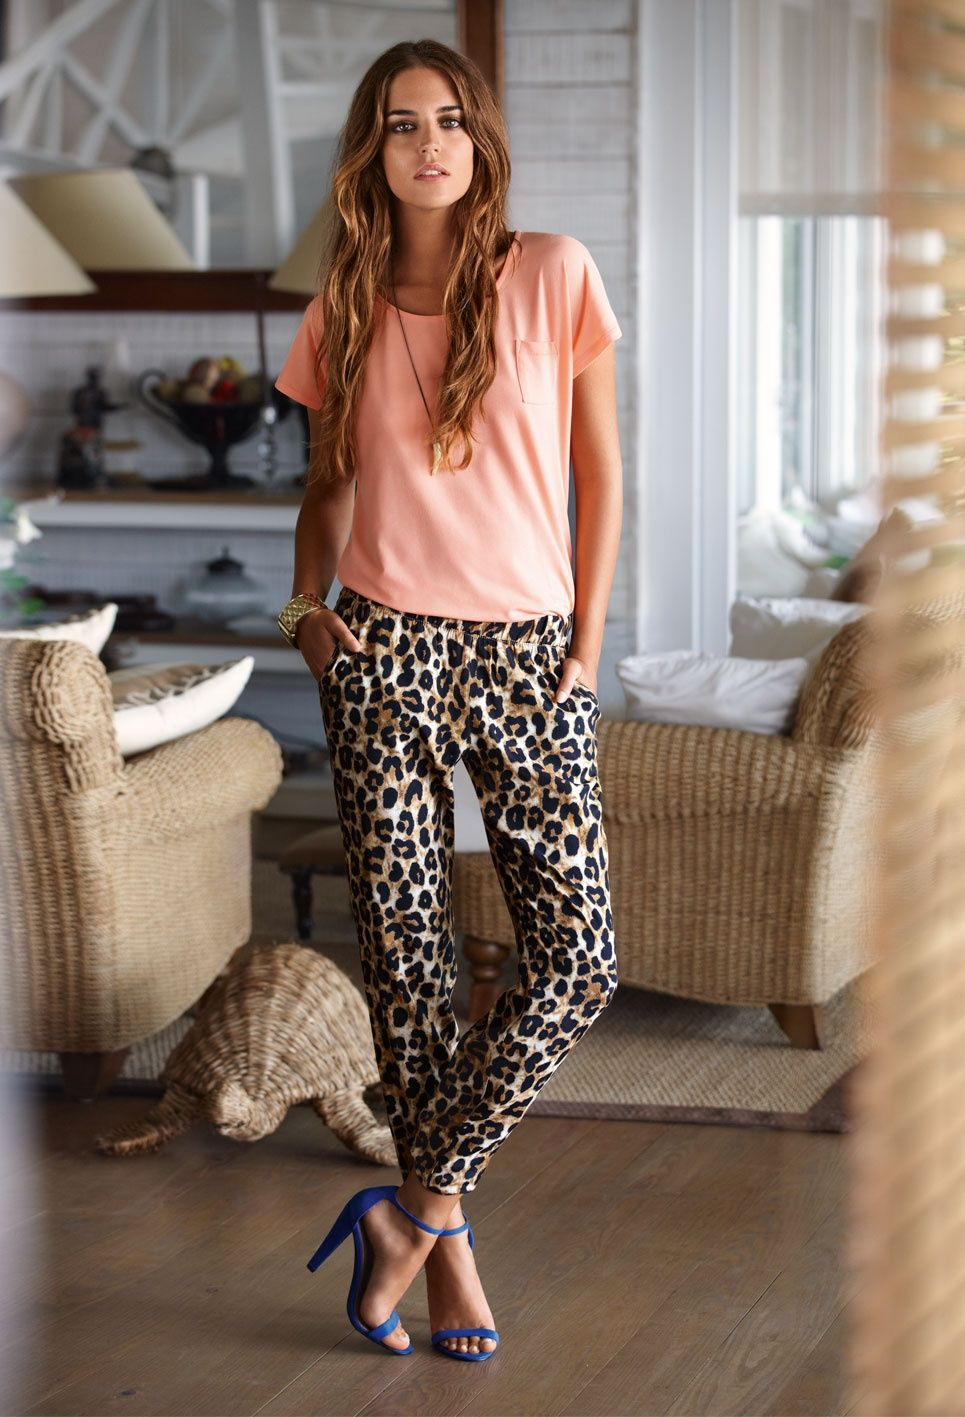 betty barclay spring summer 2013 cool outfits. Black Bedroom Furniture Sets. Home Design Ideas